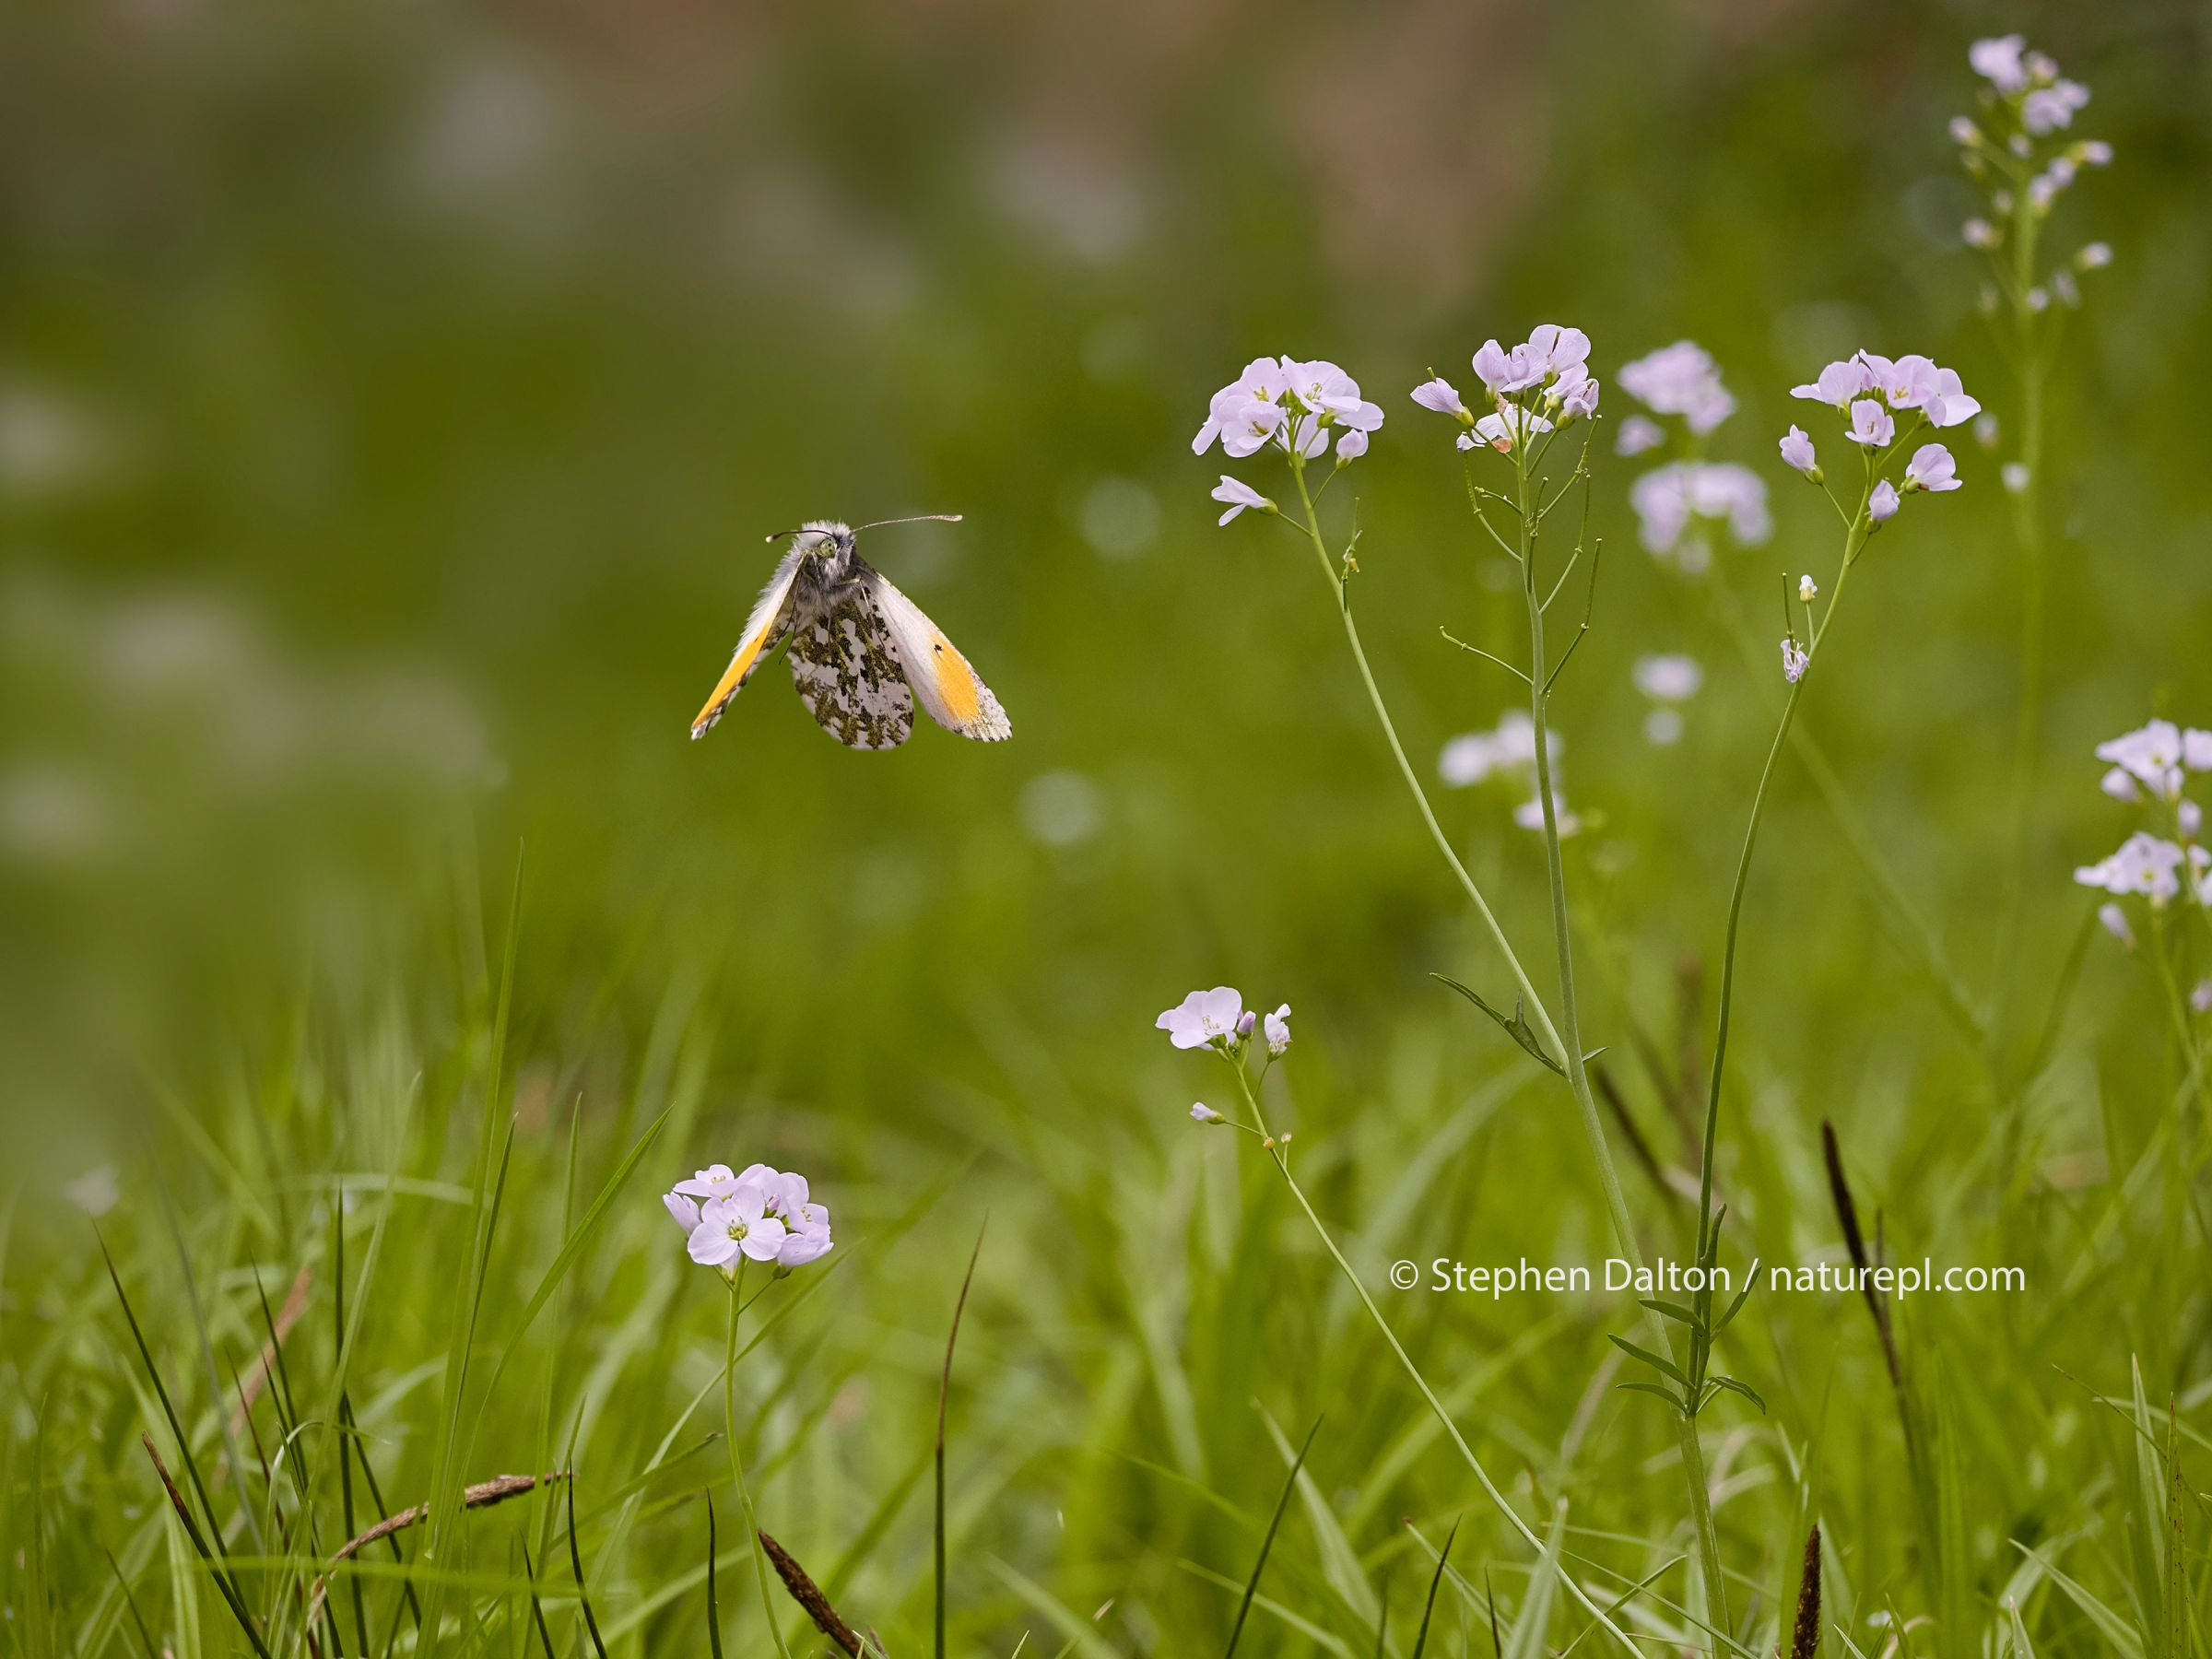 Orange tip butterfly (Anthocharis cardamines) male in flight amongst Lady's smock or Cuckooflower (Cardamine pratensis), England. Lady's smock is one of the foodplants of this butterfly, on which the female lays her eggs for the larvae to feed on.